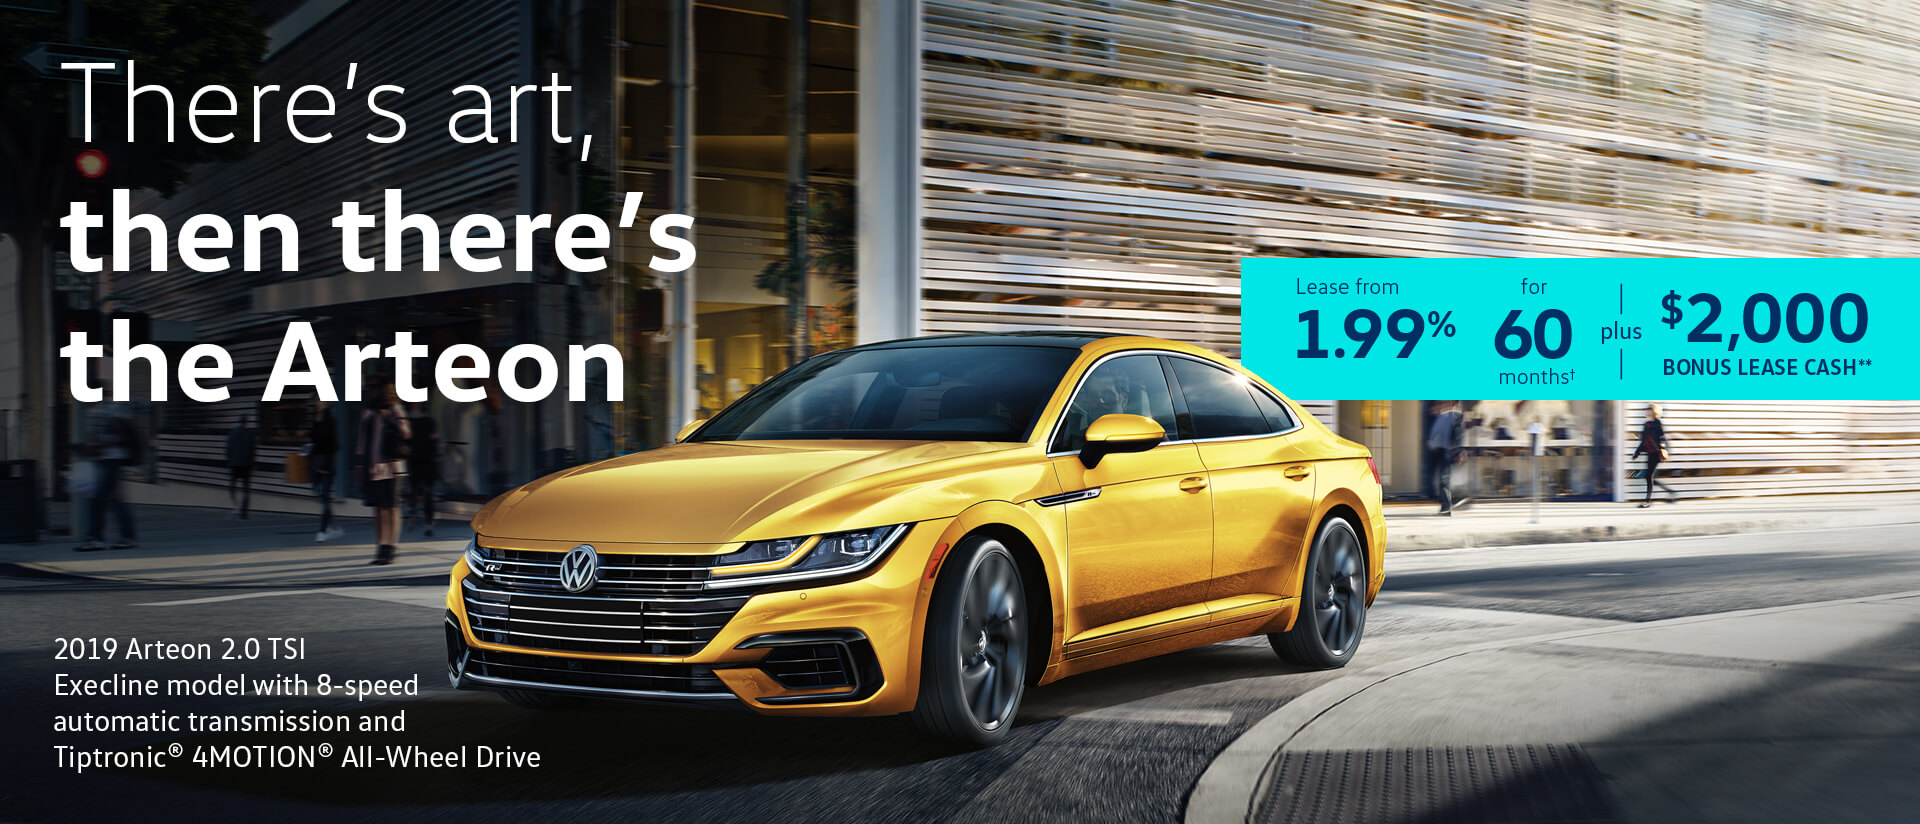 March Arteon Offer